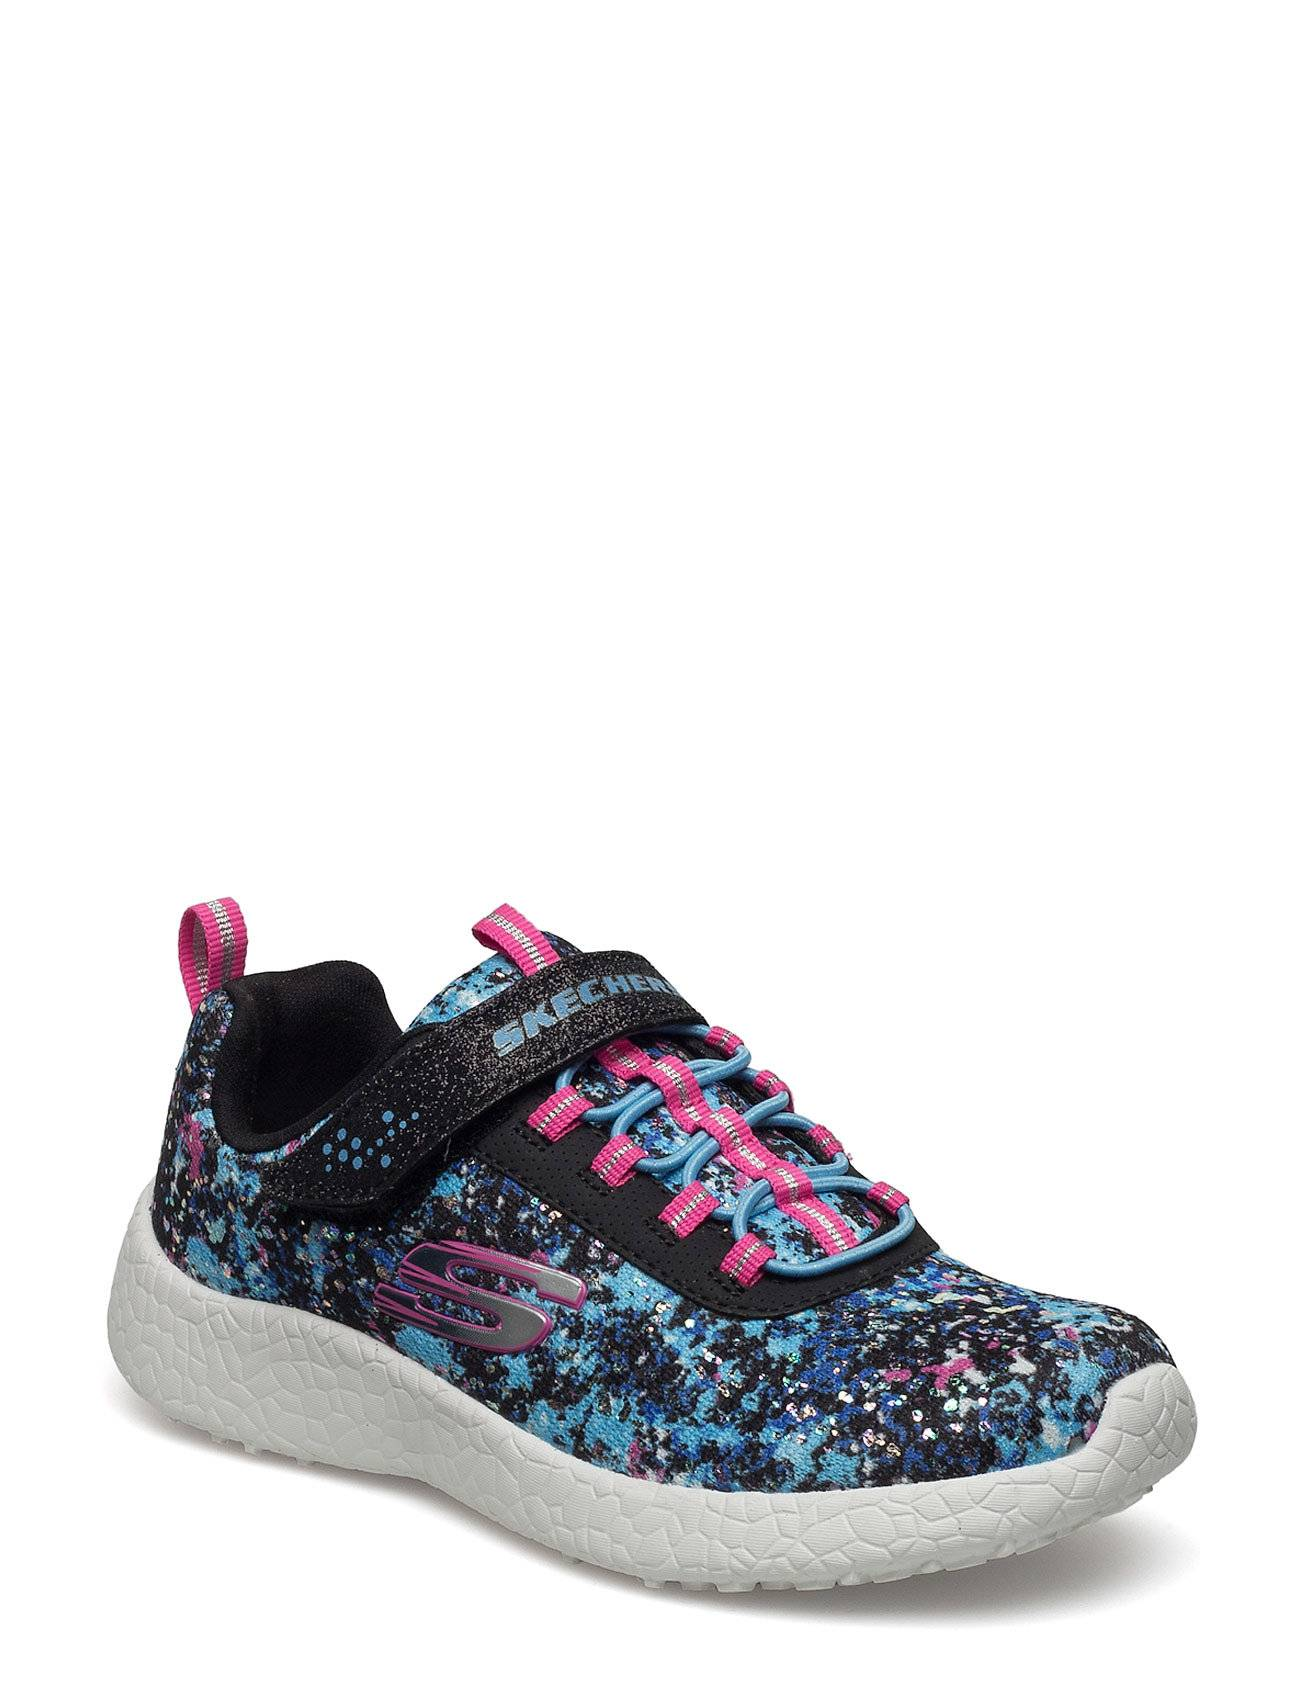 Skechers Girls Burst - Illuminations